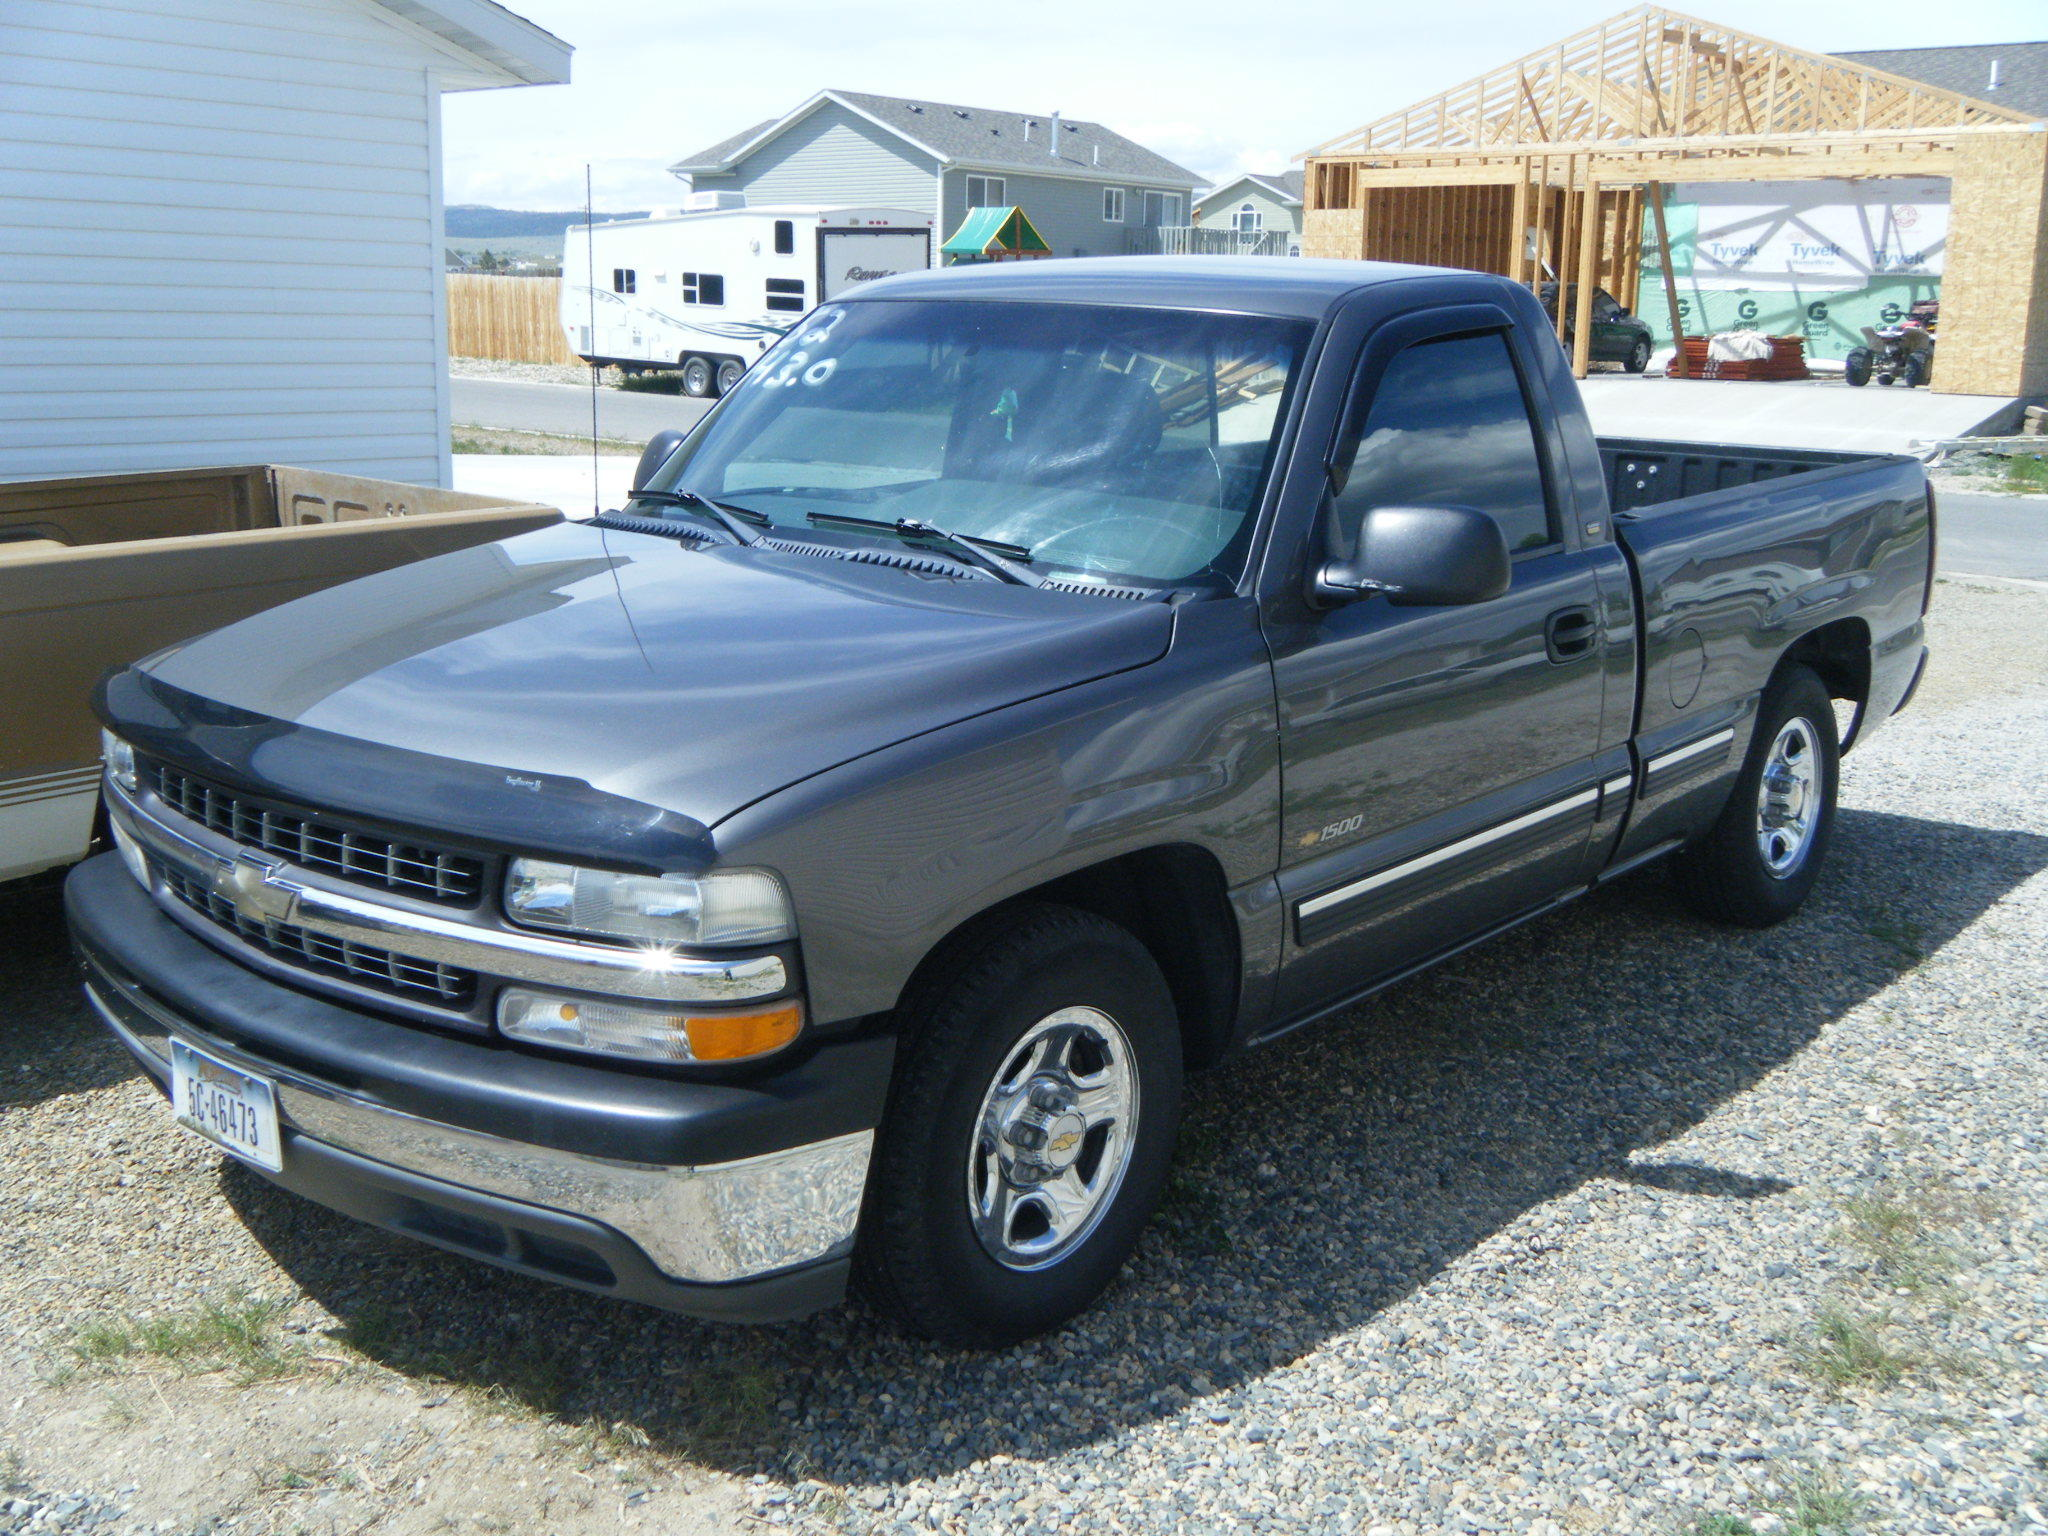 chronicitis 1999 chevrolet silverado 1500 regular cab specs photos modification info at cardomain. Black Bedroom Furniture Sets. Home Design Ideas